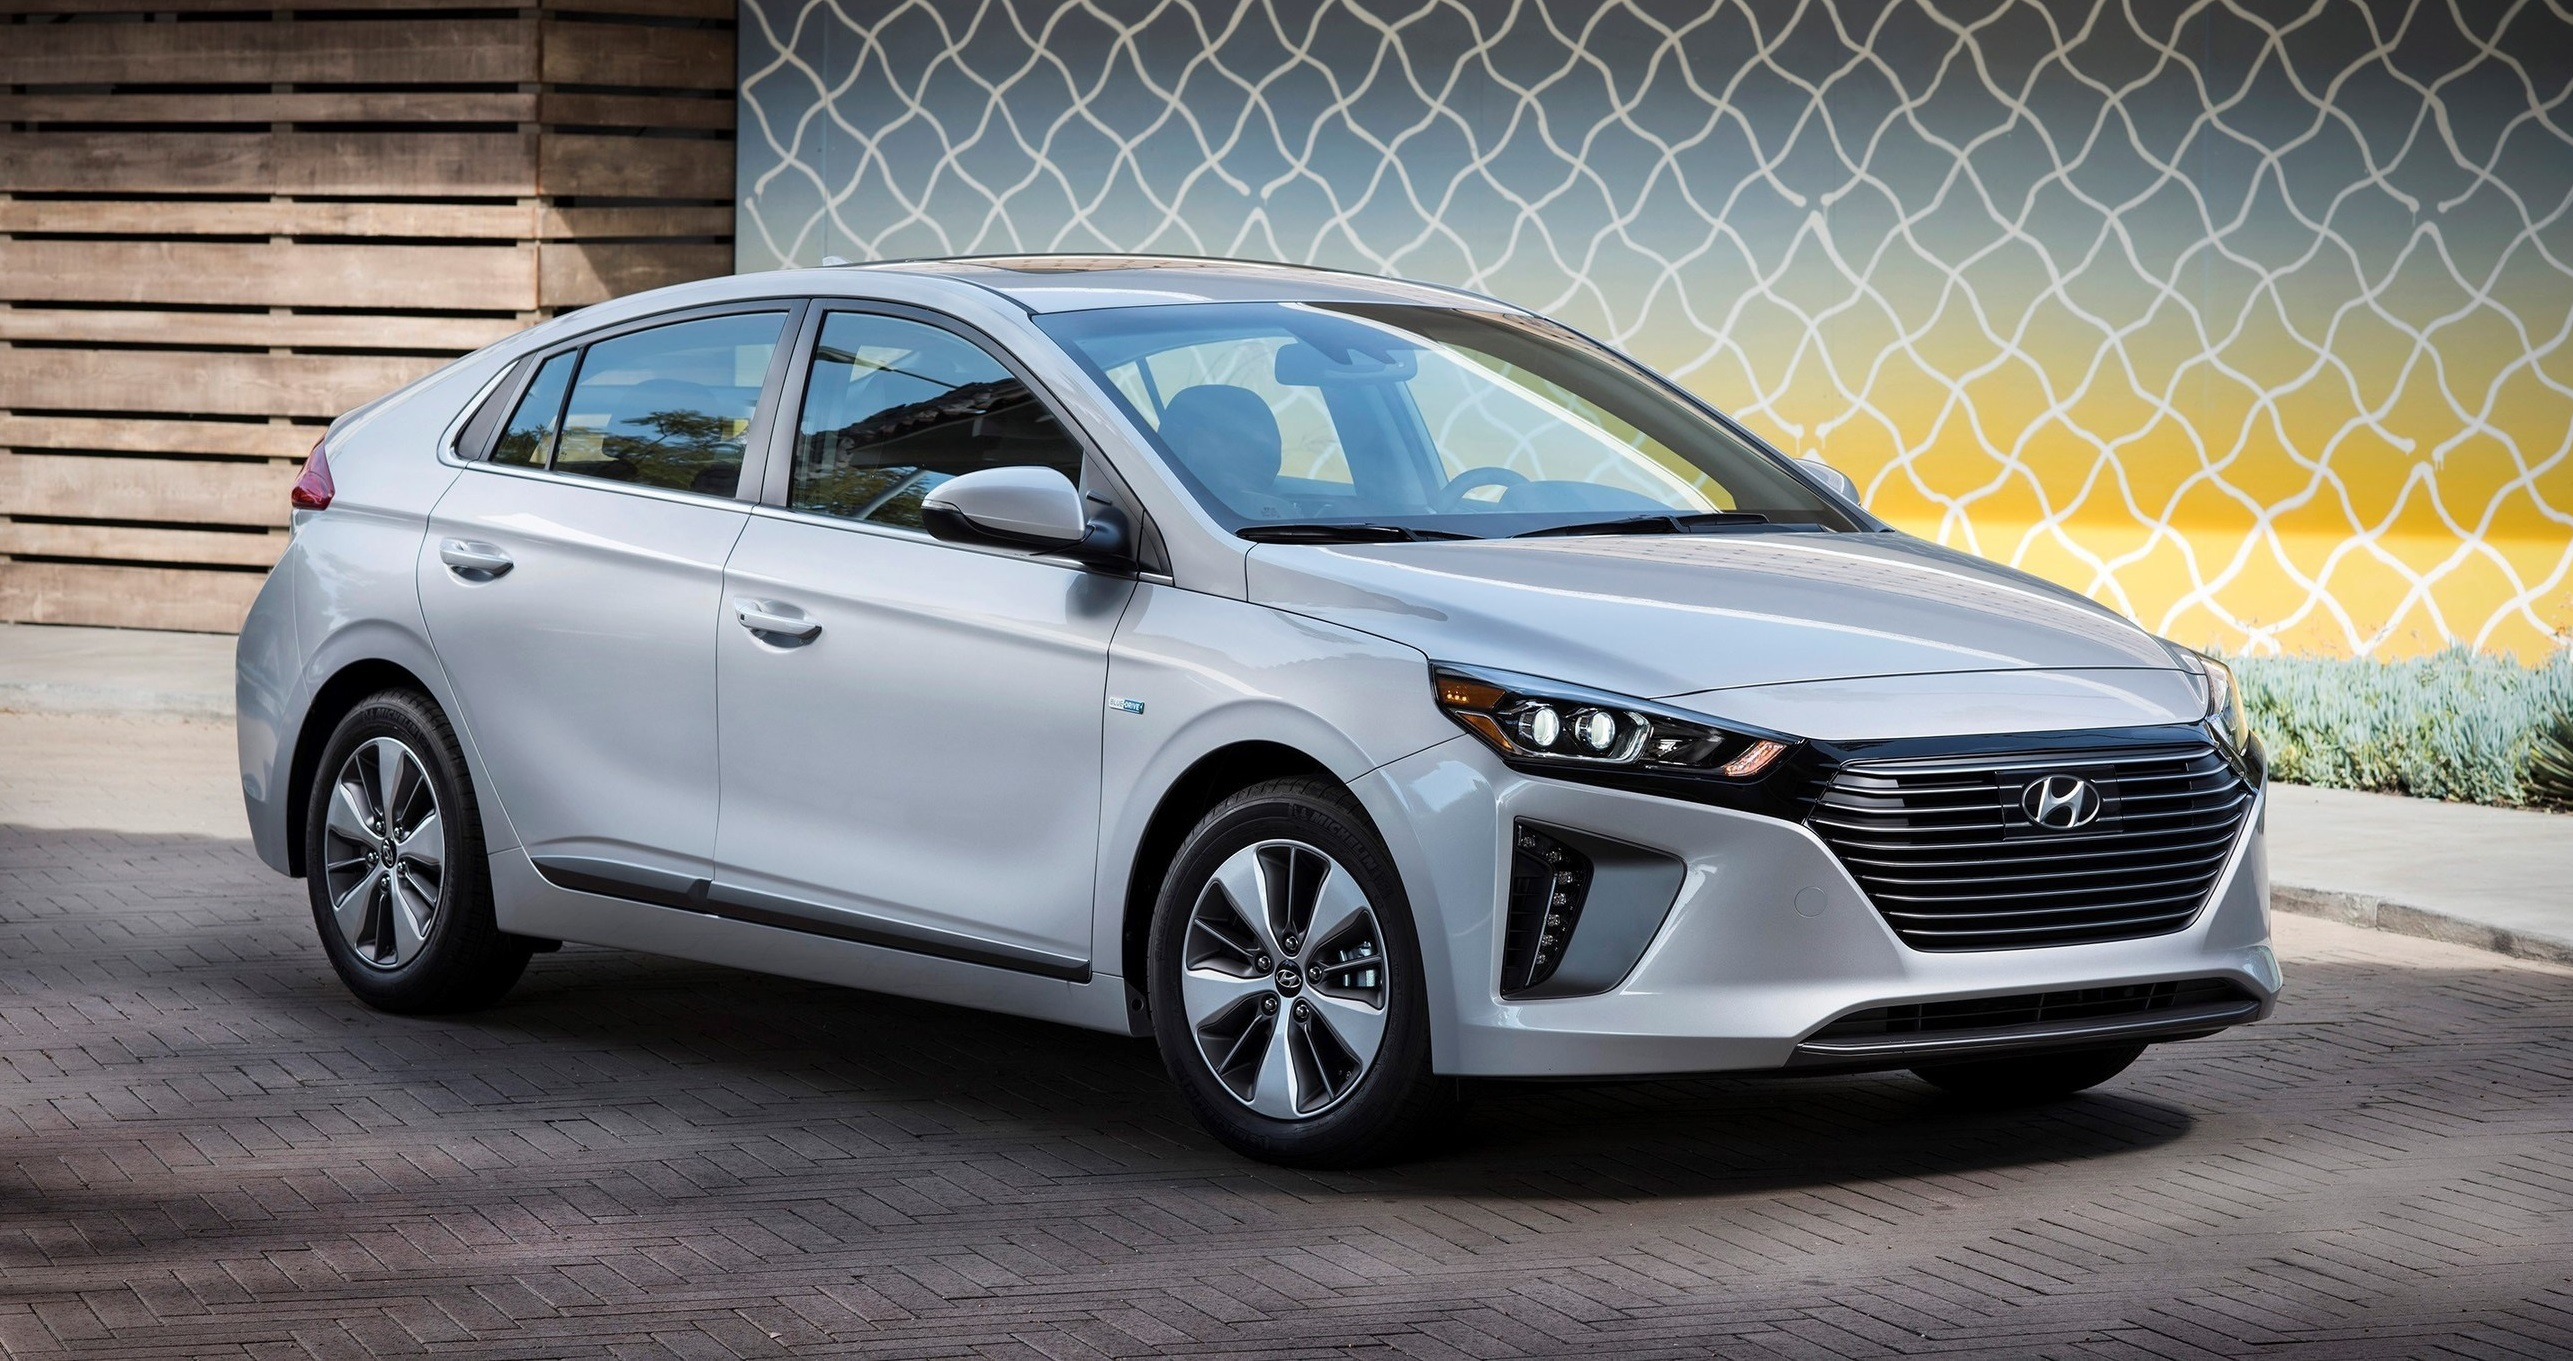 Here are 20 vehicles that will help you go green in 2018